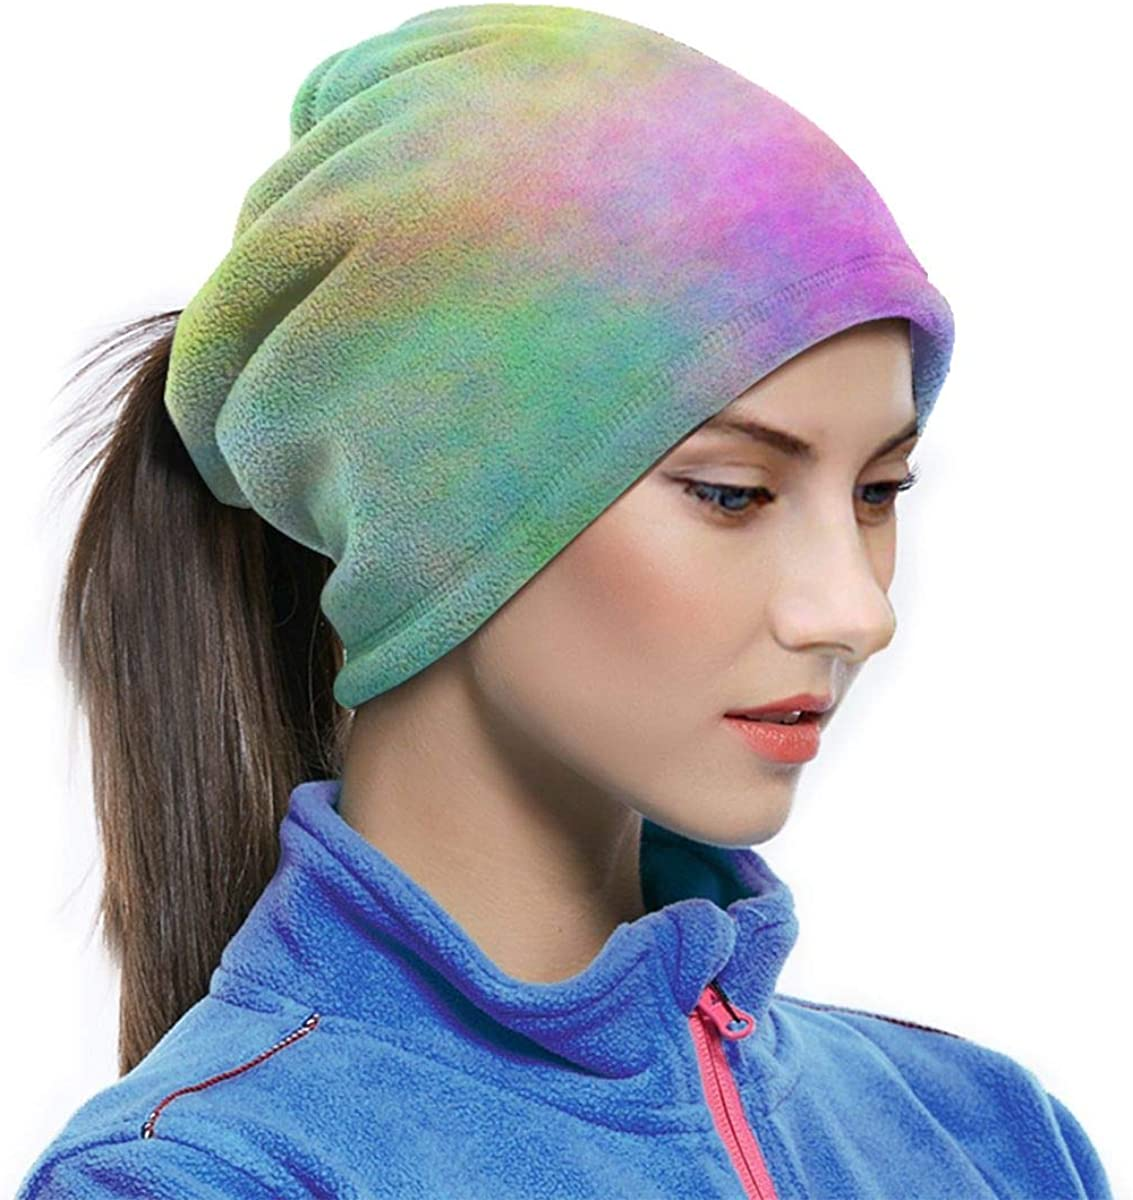 Pastel Rainbow Tie Dye Winter Neck Warmer Gaiter//Balaclava Ski Face Mask Cover Neck Gaiter Tube Ear Warmer Headband /& Face Mask Hats Headwear for Cold Weather Winter Outdoor Sports